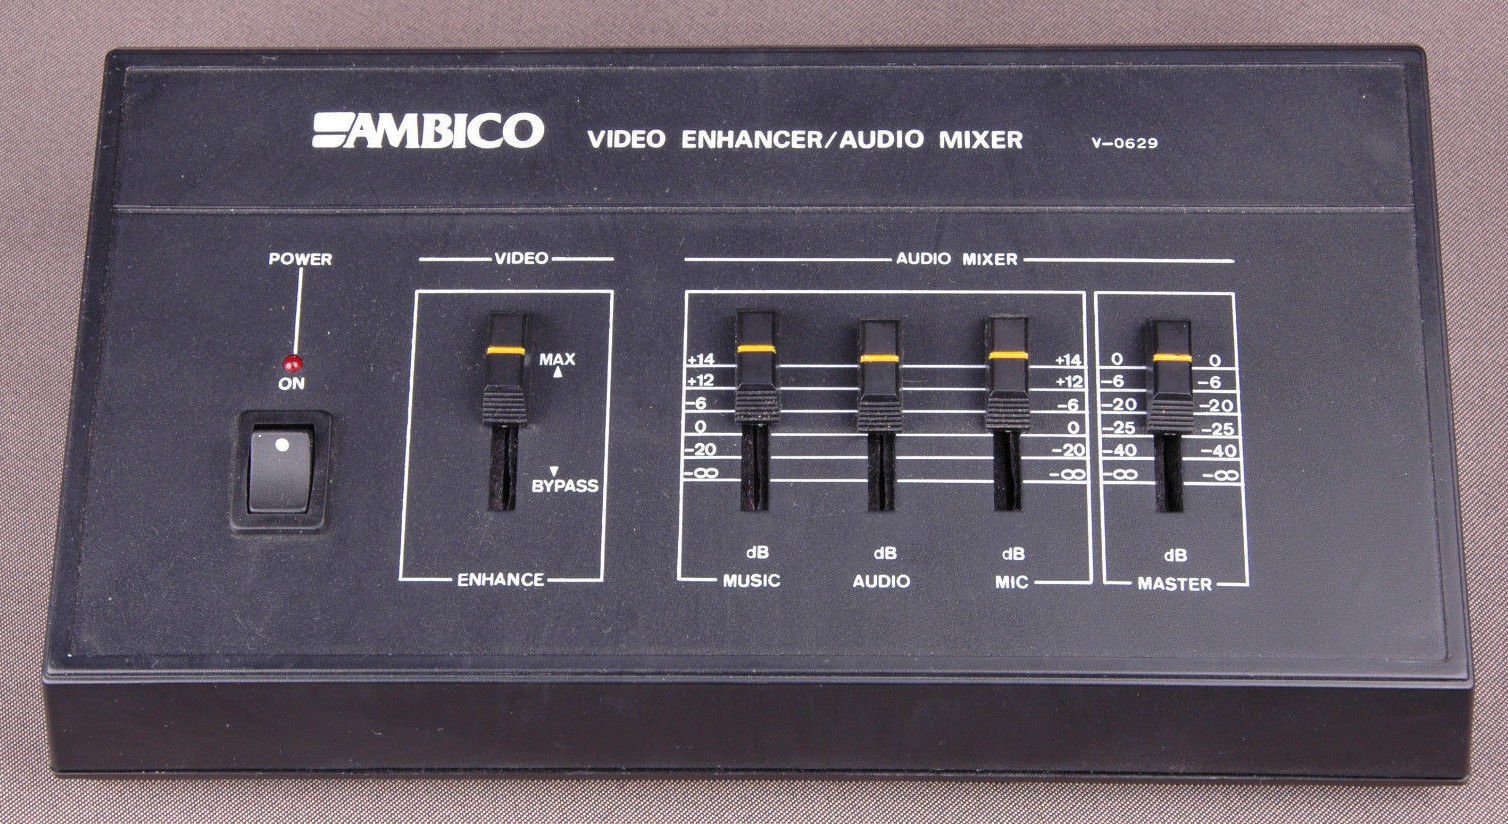 Cameras & Photo New Ambico Av Maestro V-0629 Video Enhancer/stereo Audio Mixer Boosts Video Sign Buy One Get One Free